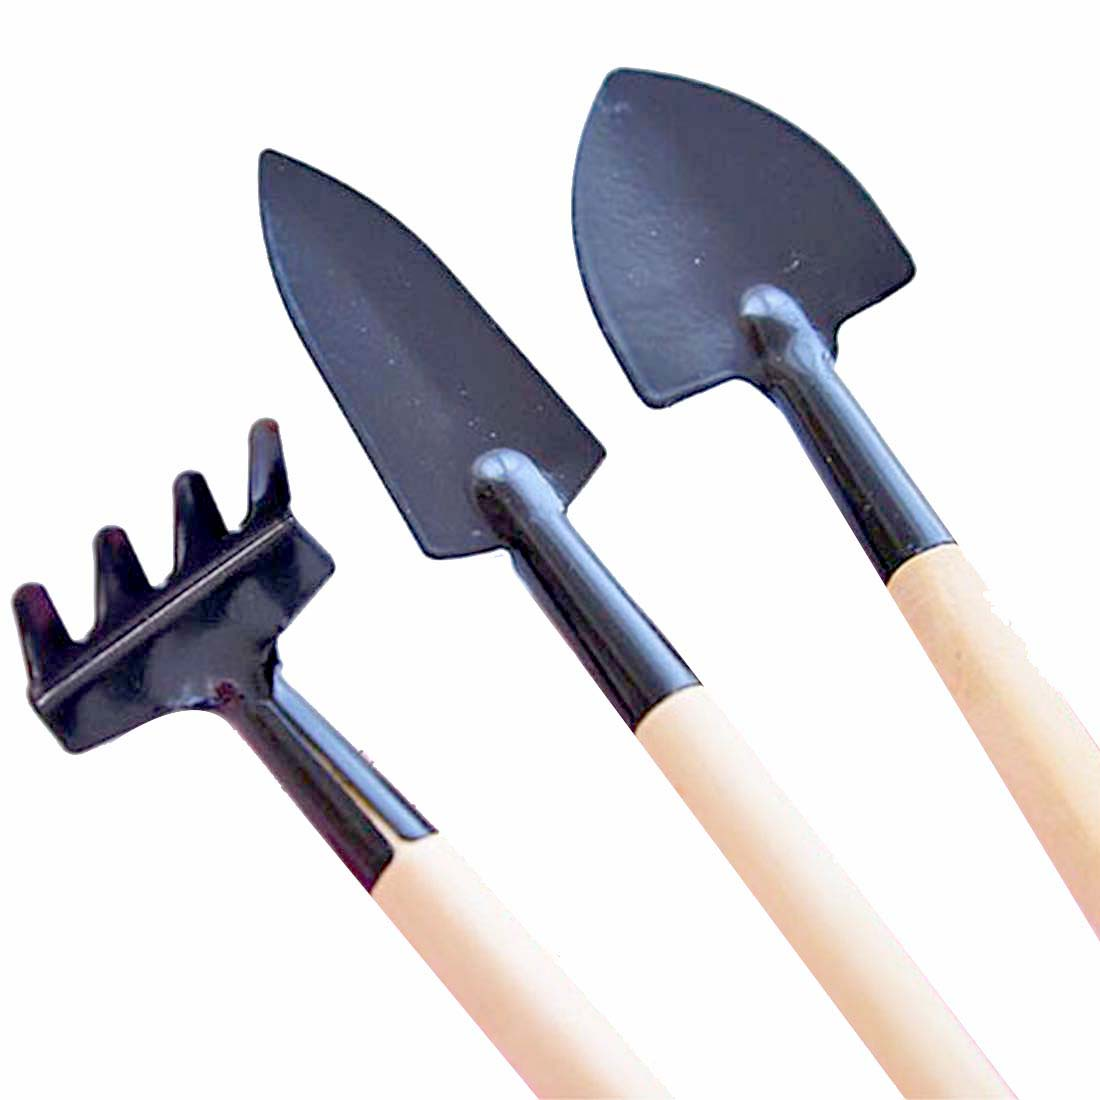 Uxcell 3 In 1 Set Hollow Out Shaped Wooden Handgrip Black Metal Rake Digging Trowel Plants Cultivator Garden Horticulture Tools Garden Tools